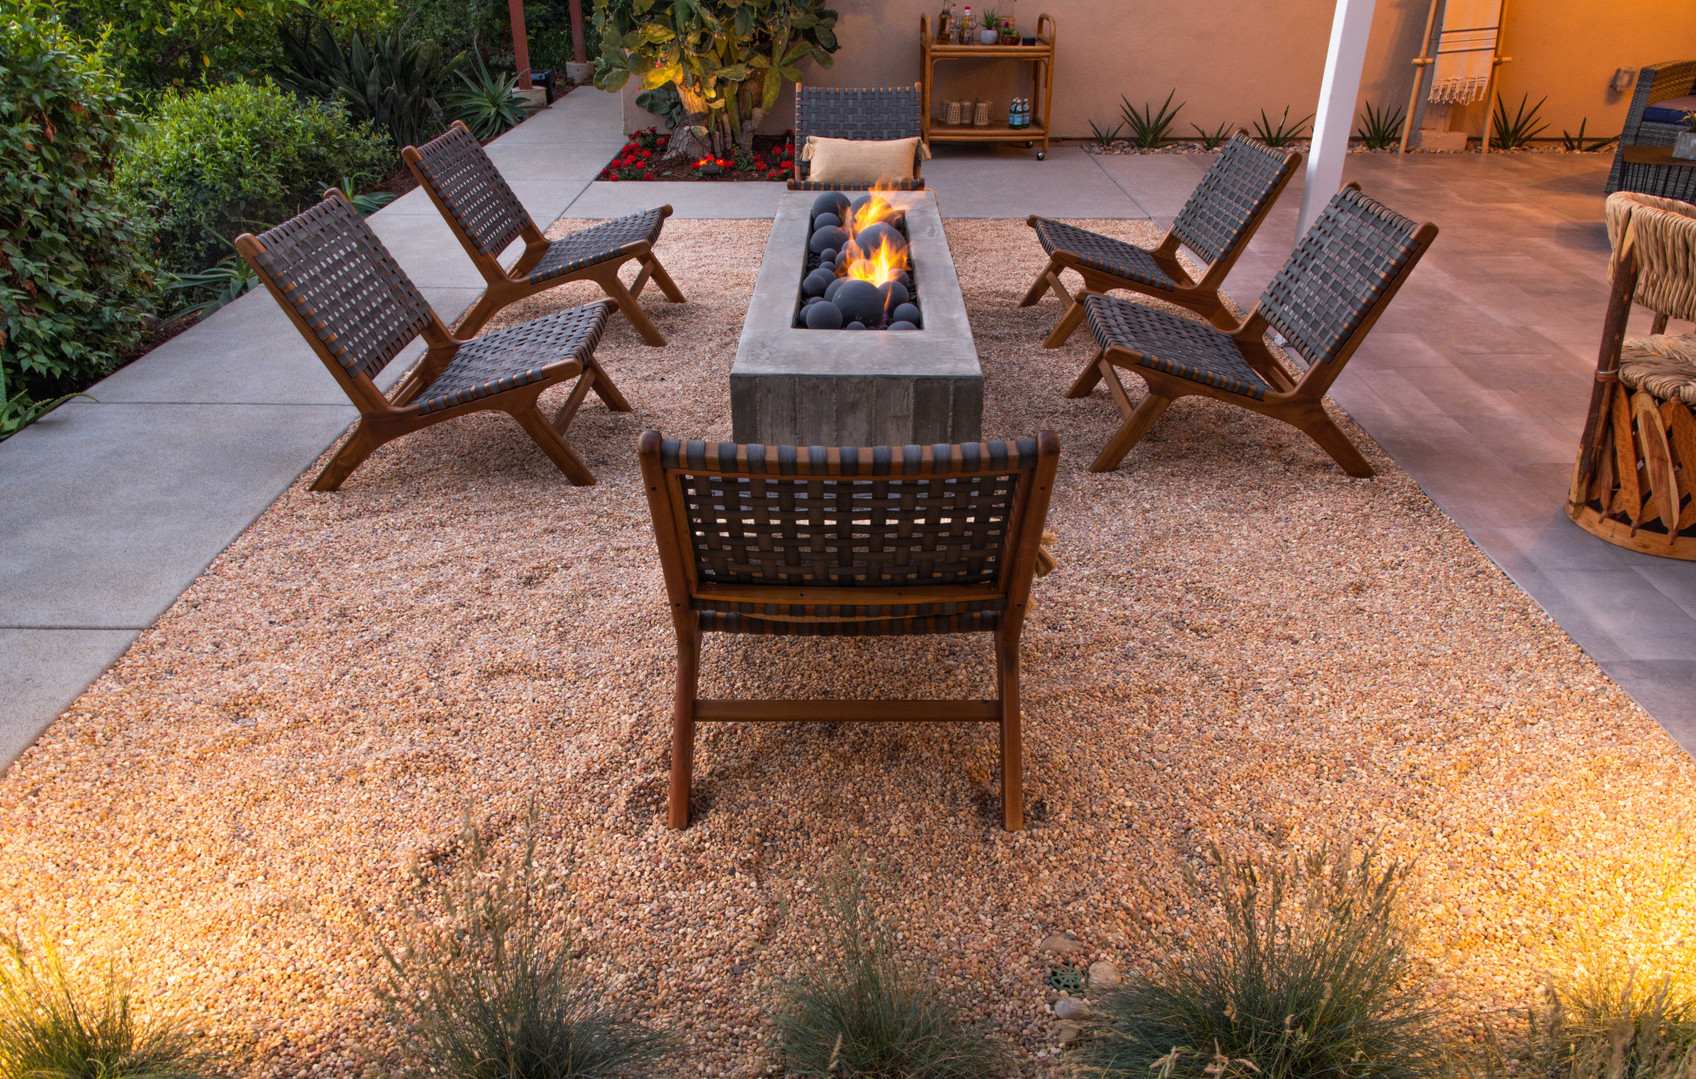 Brookside Design Contemporary Landscape Design. Custom outdoor furnishings. Custom firepits. Modern landscape architecture. Contemporary landscape design.